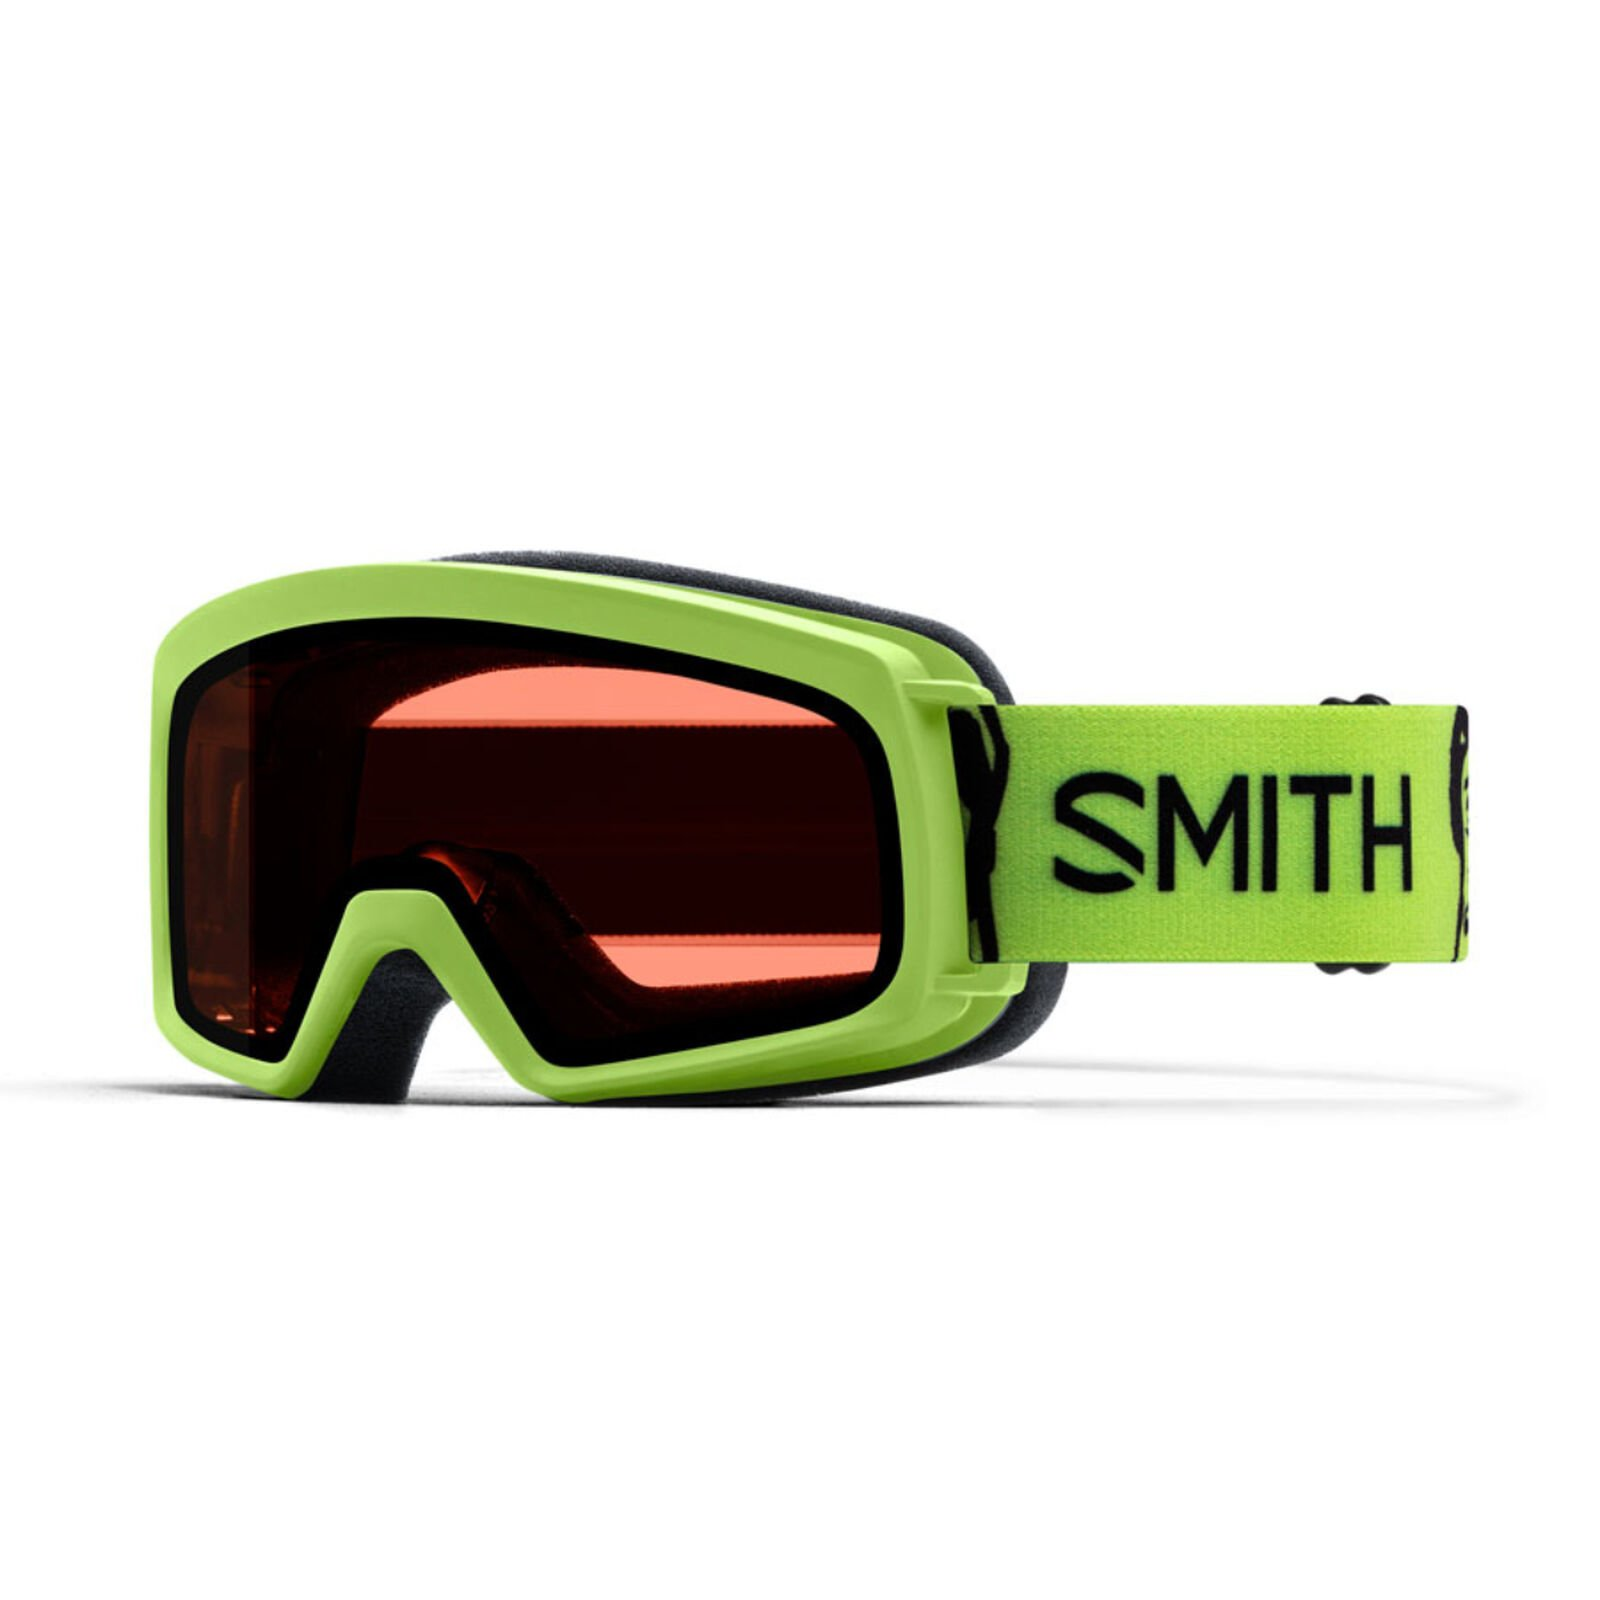 Smith Gambler Snowboard Goggle (Multiple Color Options)